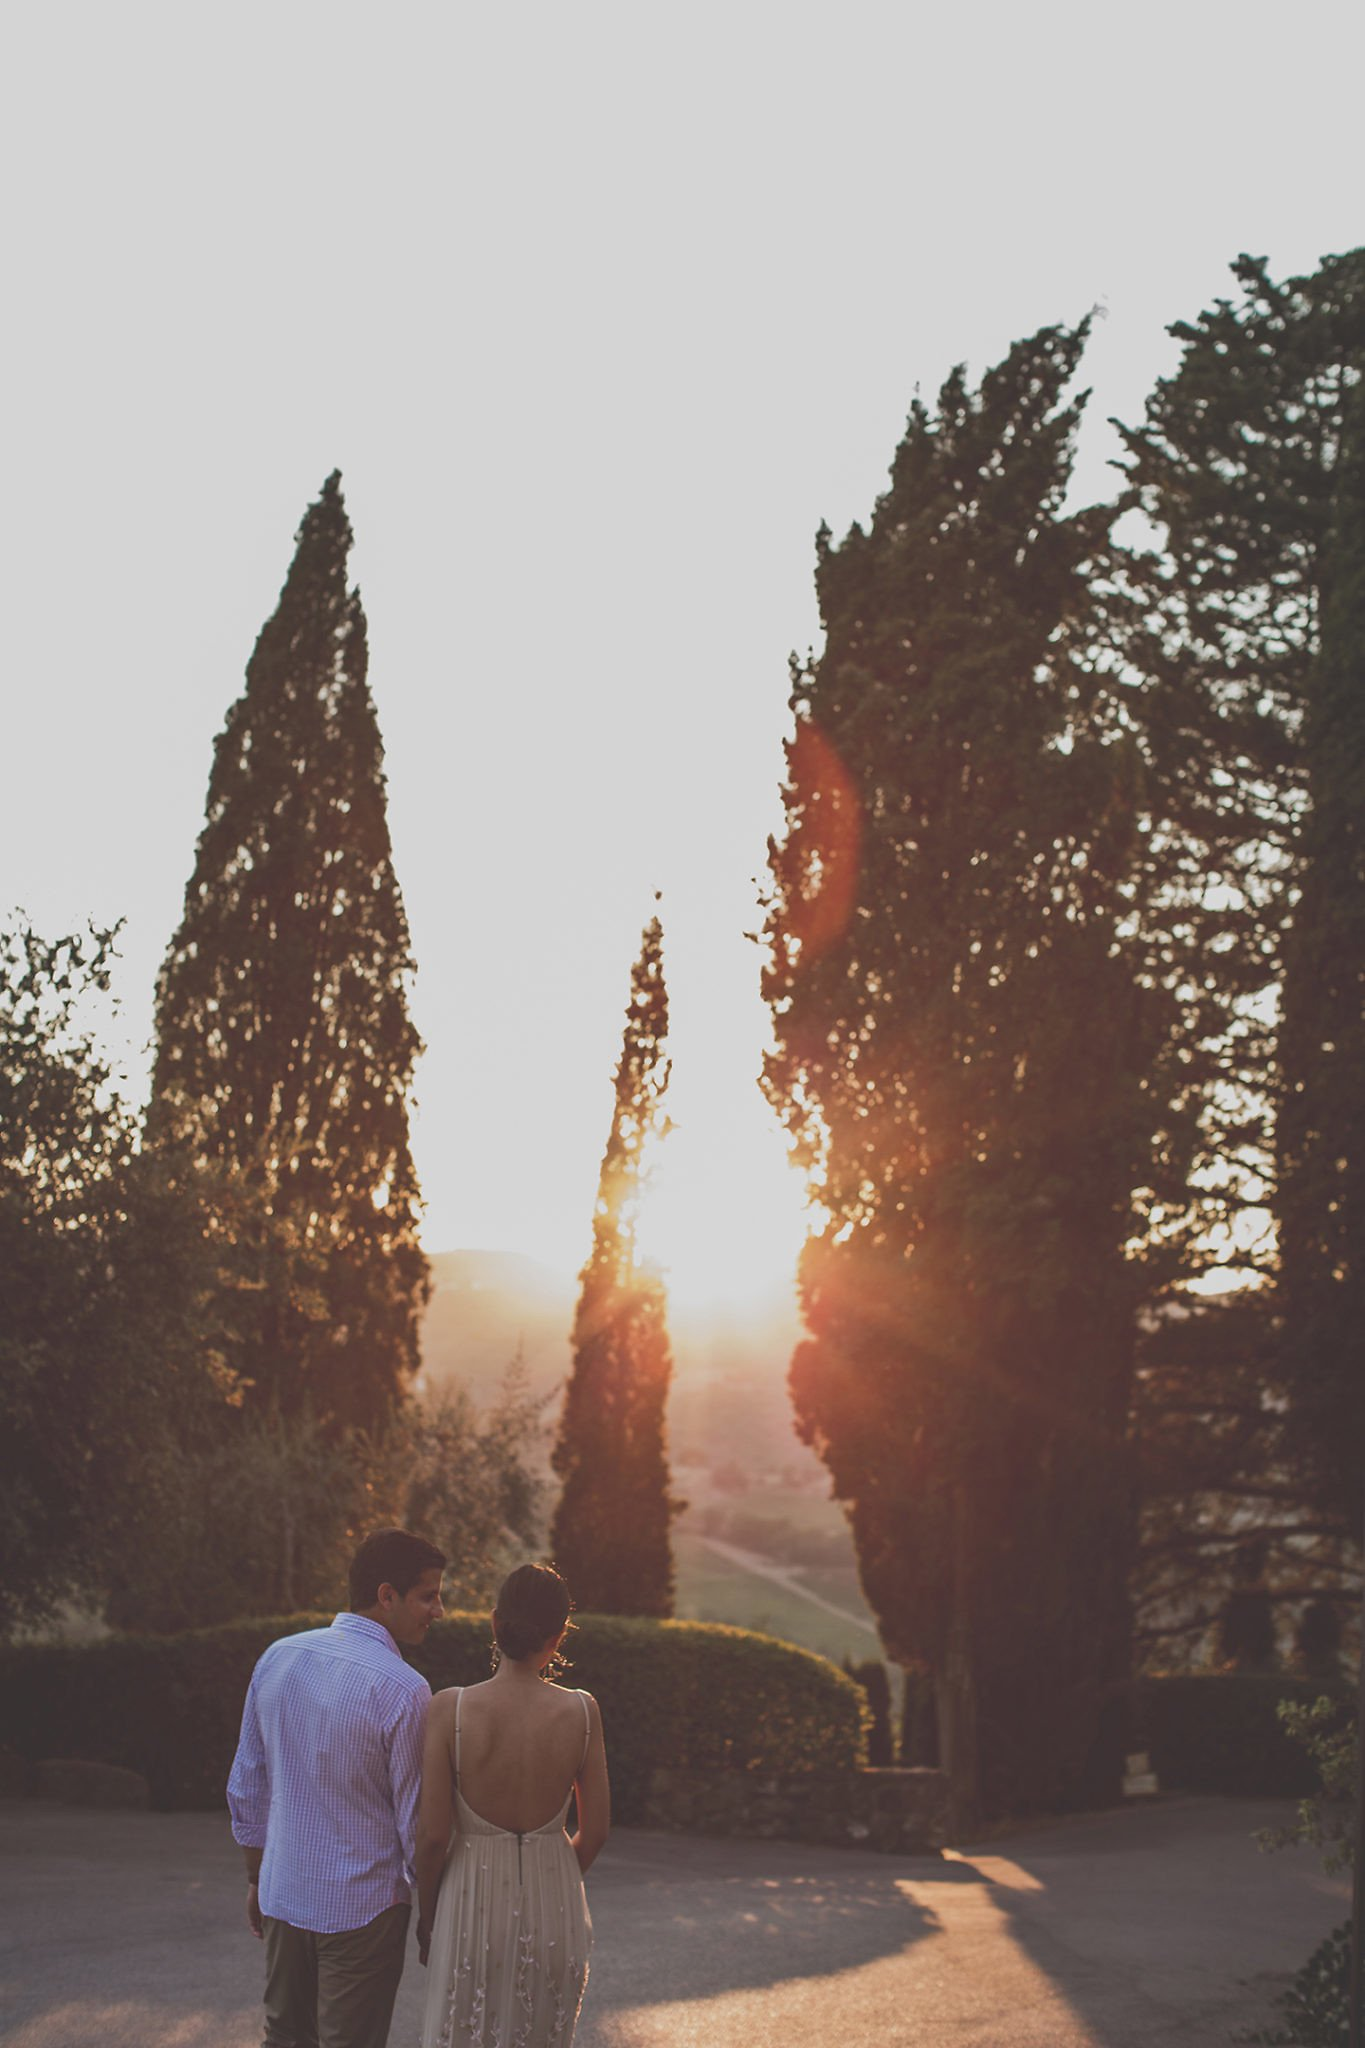 sunset-couple-portrait-vignamaggio-tuscany